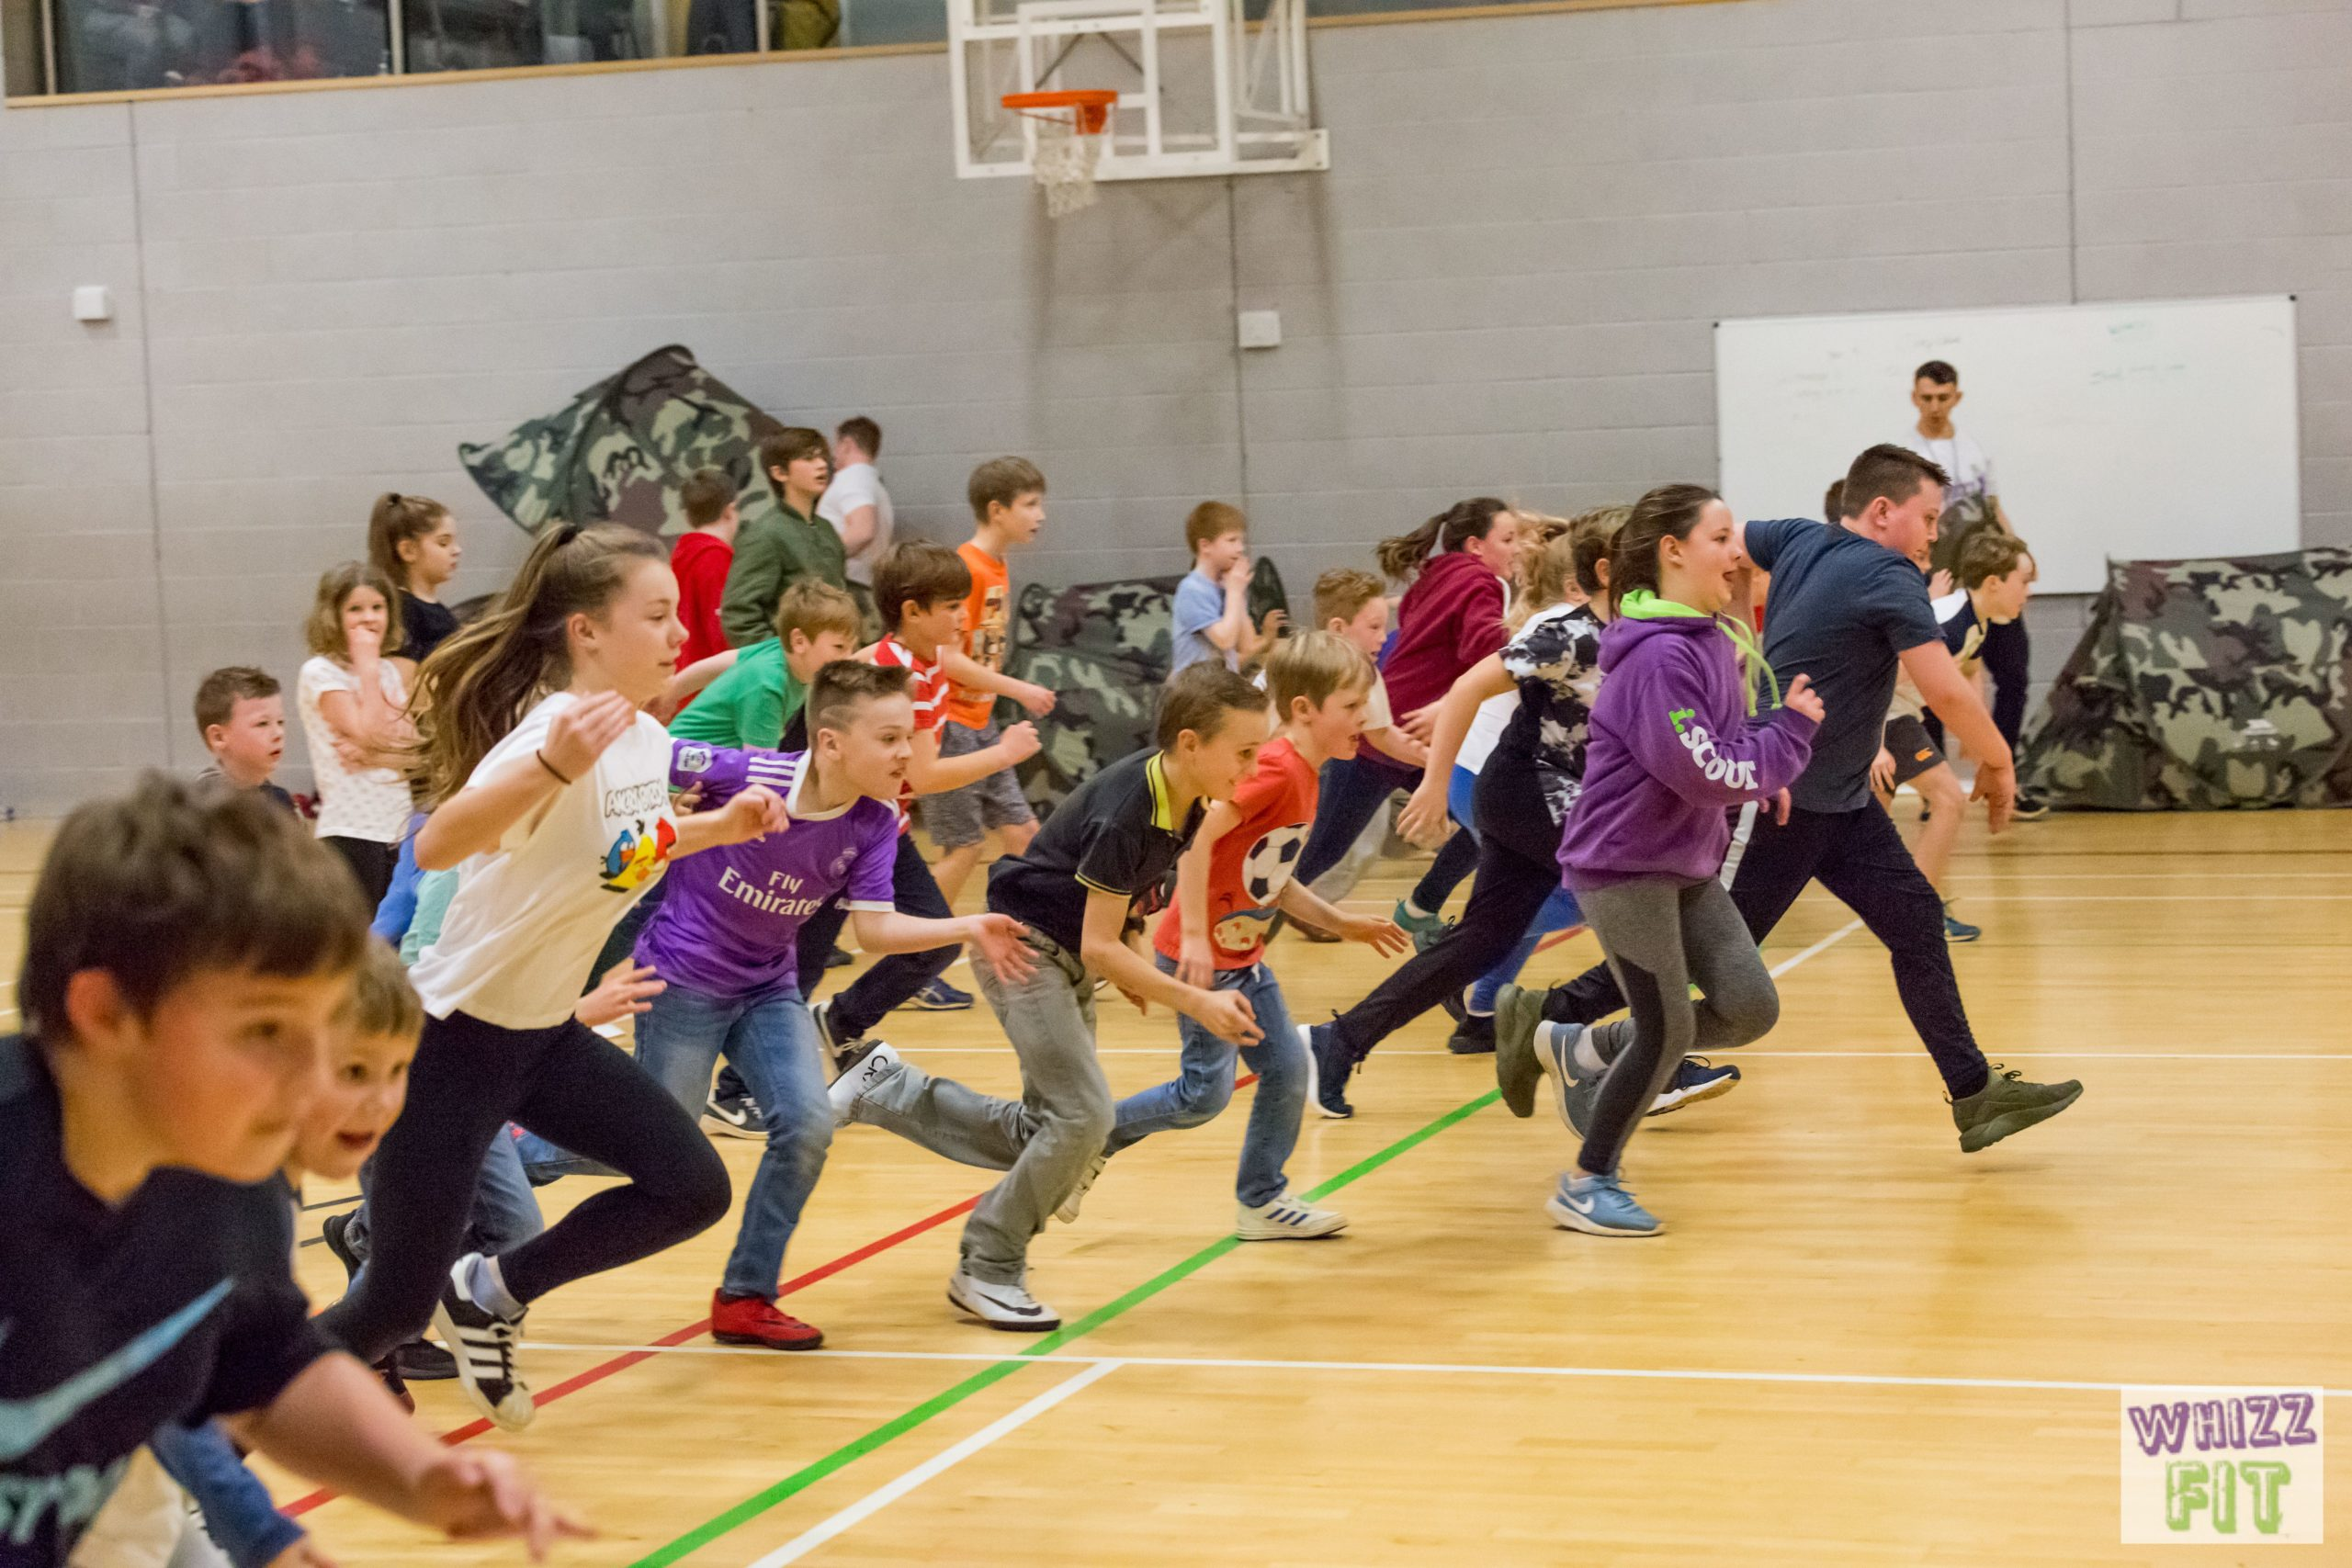 Free WhizzFit Club Session with Lucy at Esher Church School